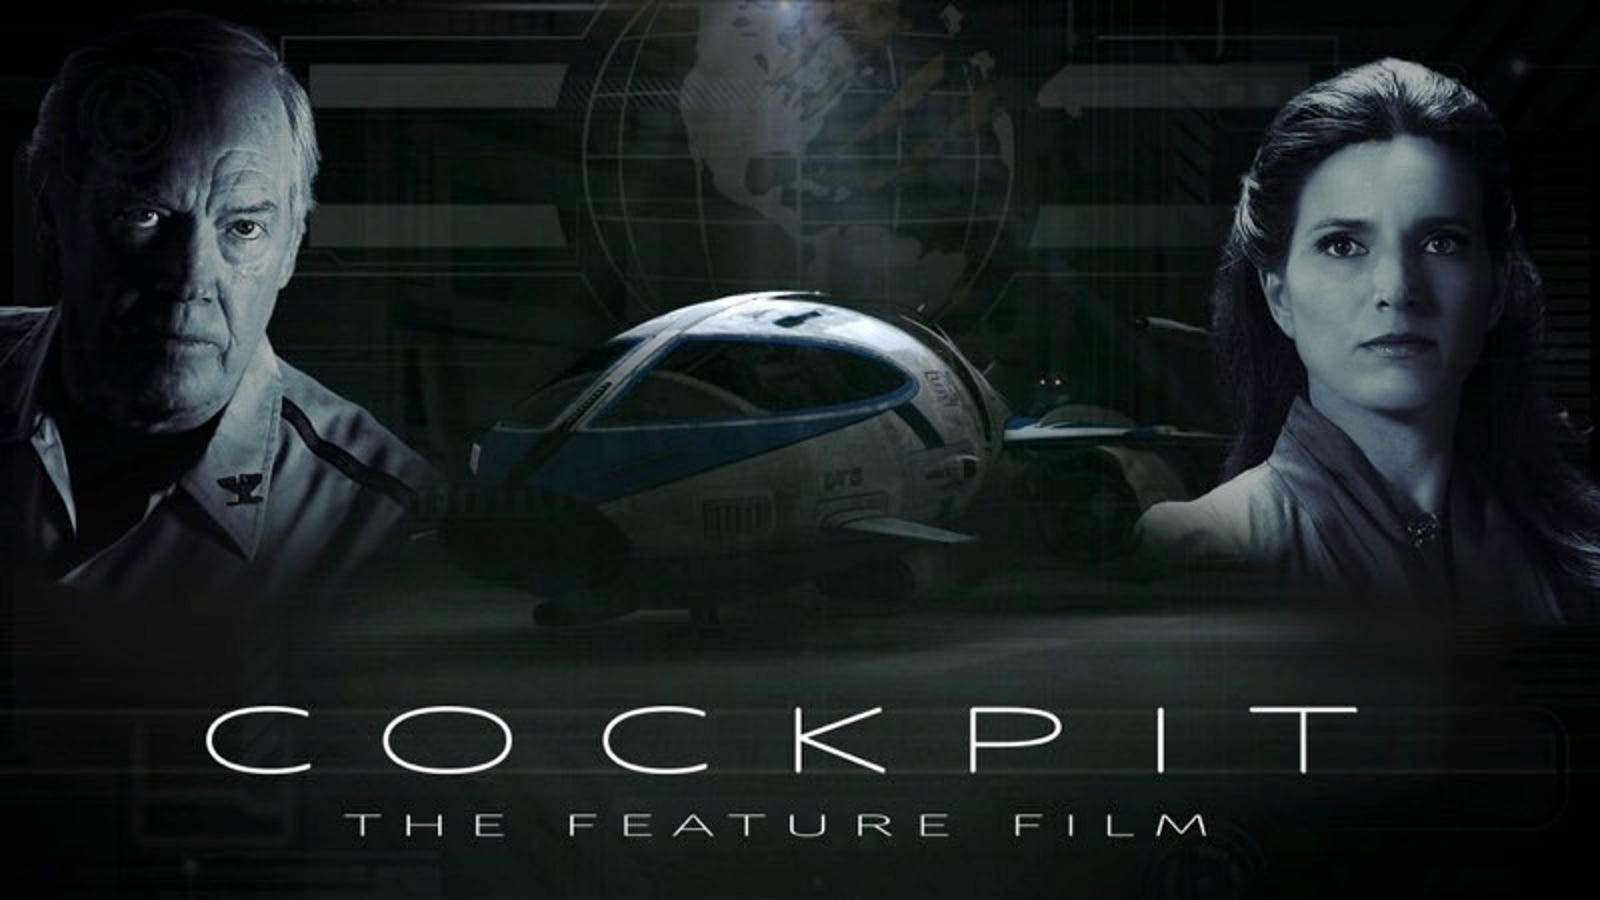 The Awesome Scifi Short Cockpit Could Become a Feature Film (With a Bit of Help)